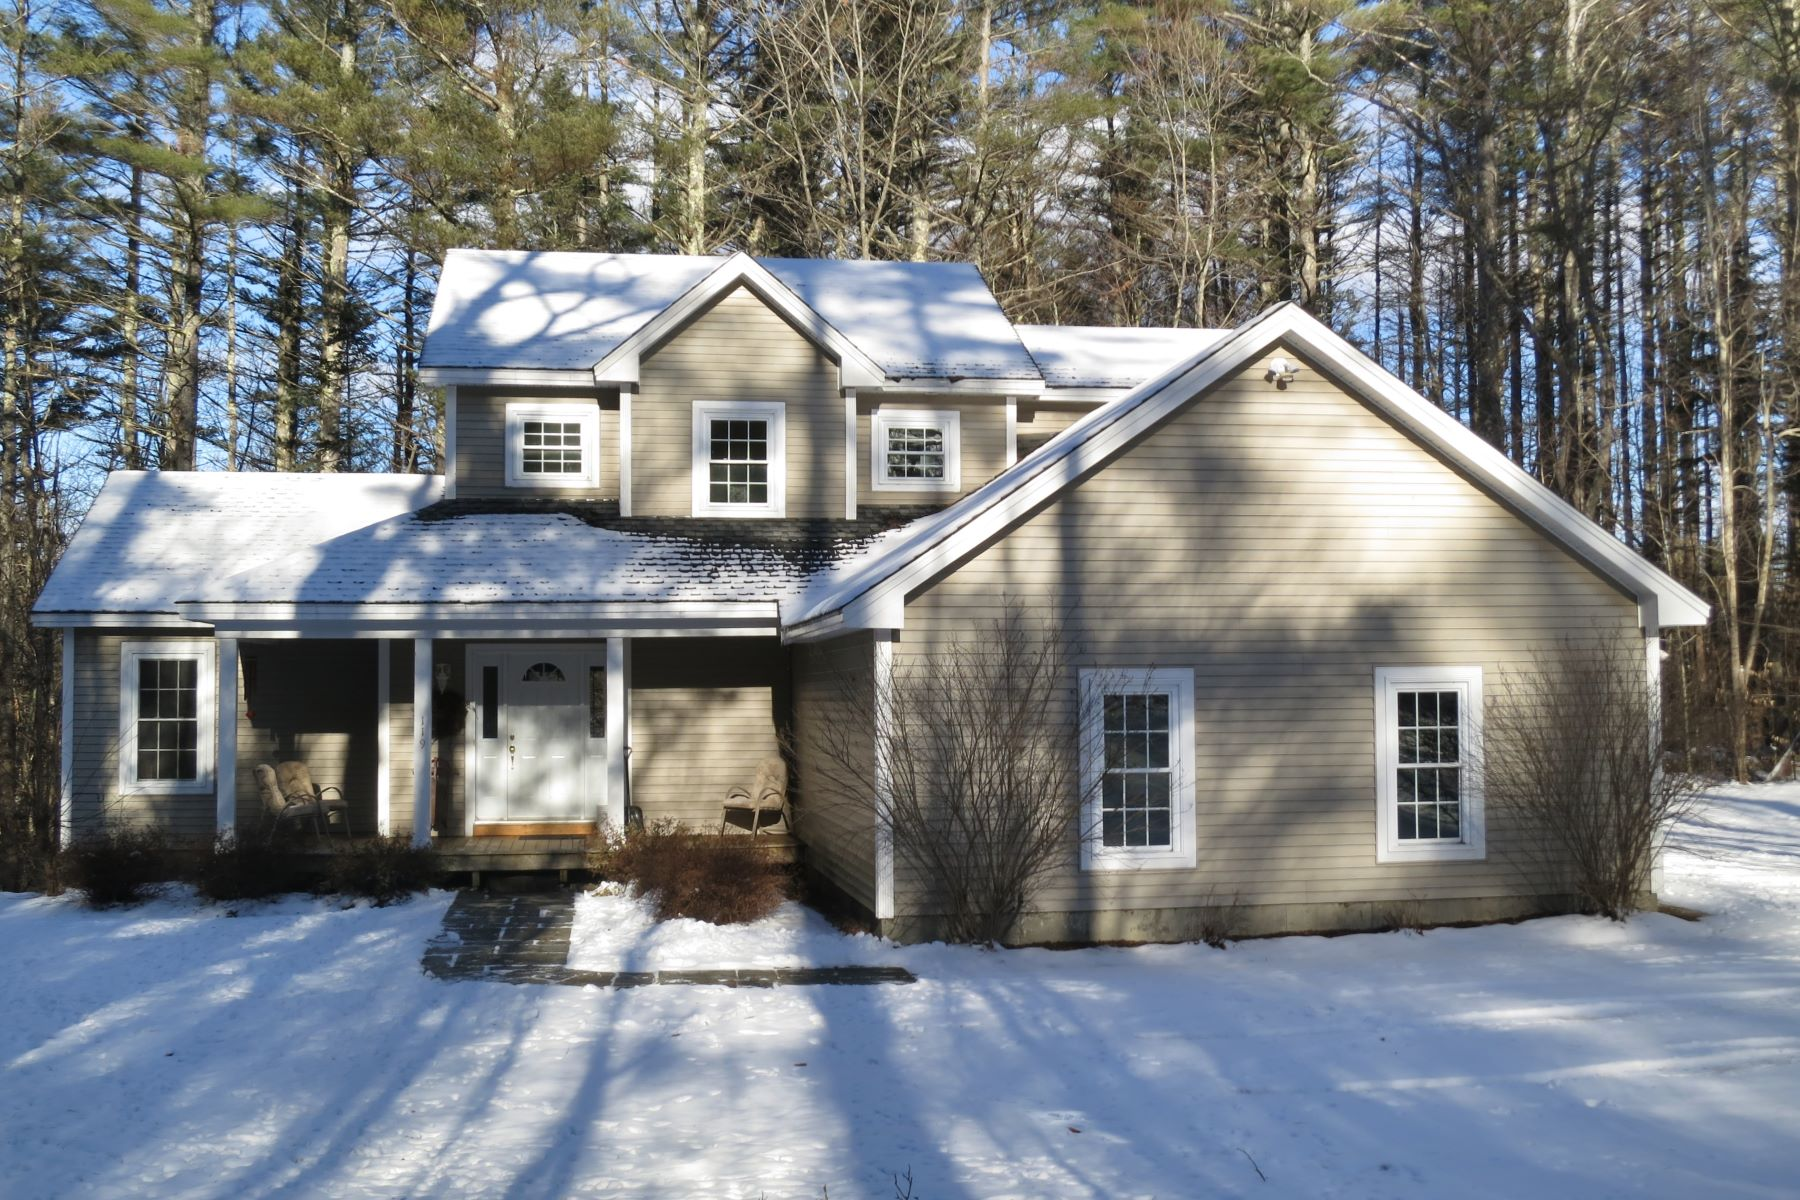 Single Family Home for Sale at 119 Adams Drive, Londonderry Londonderry, Vermont, 05148 United States